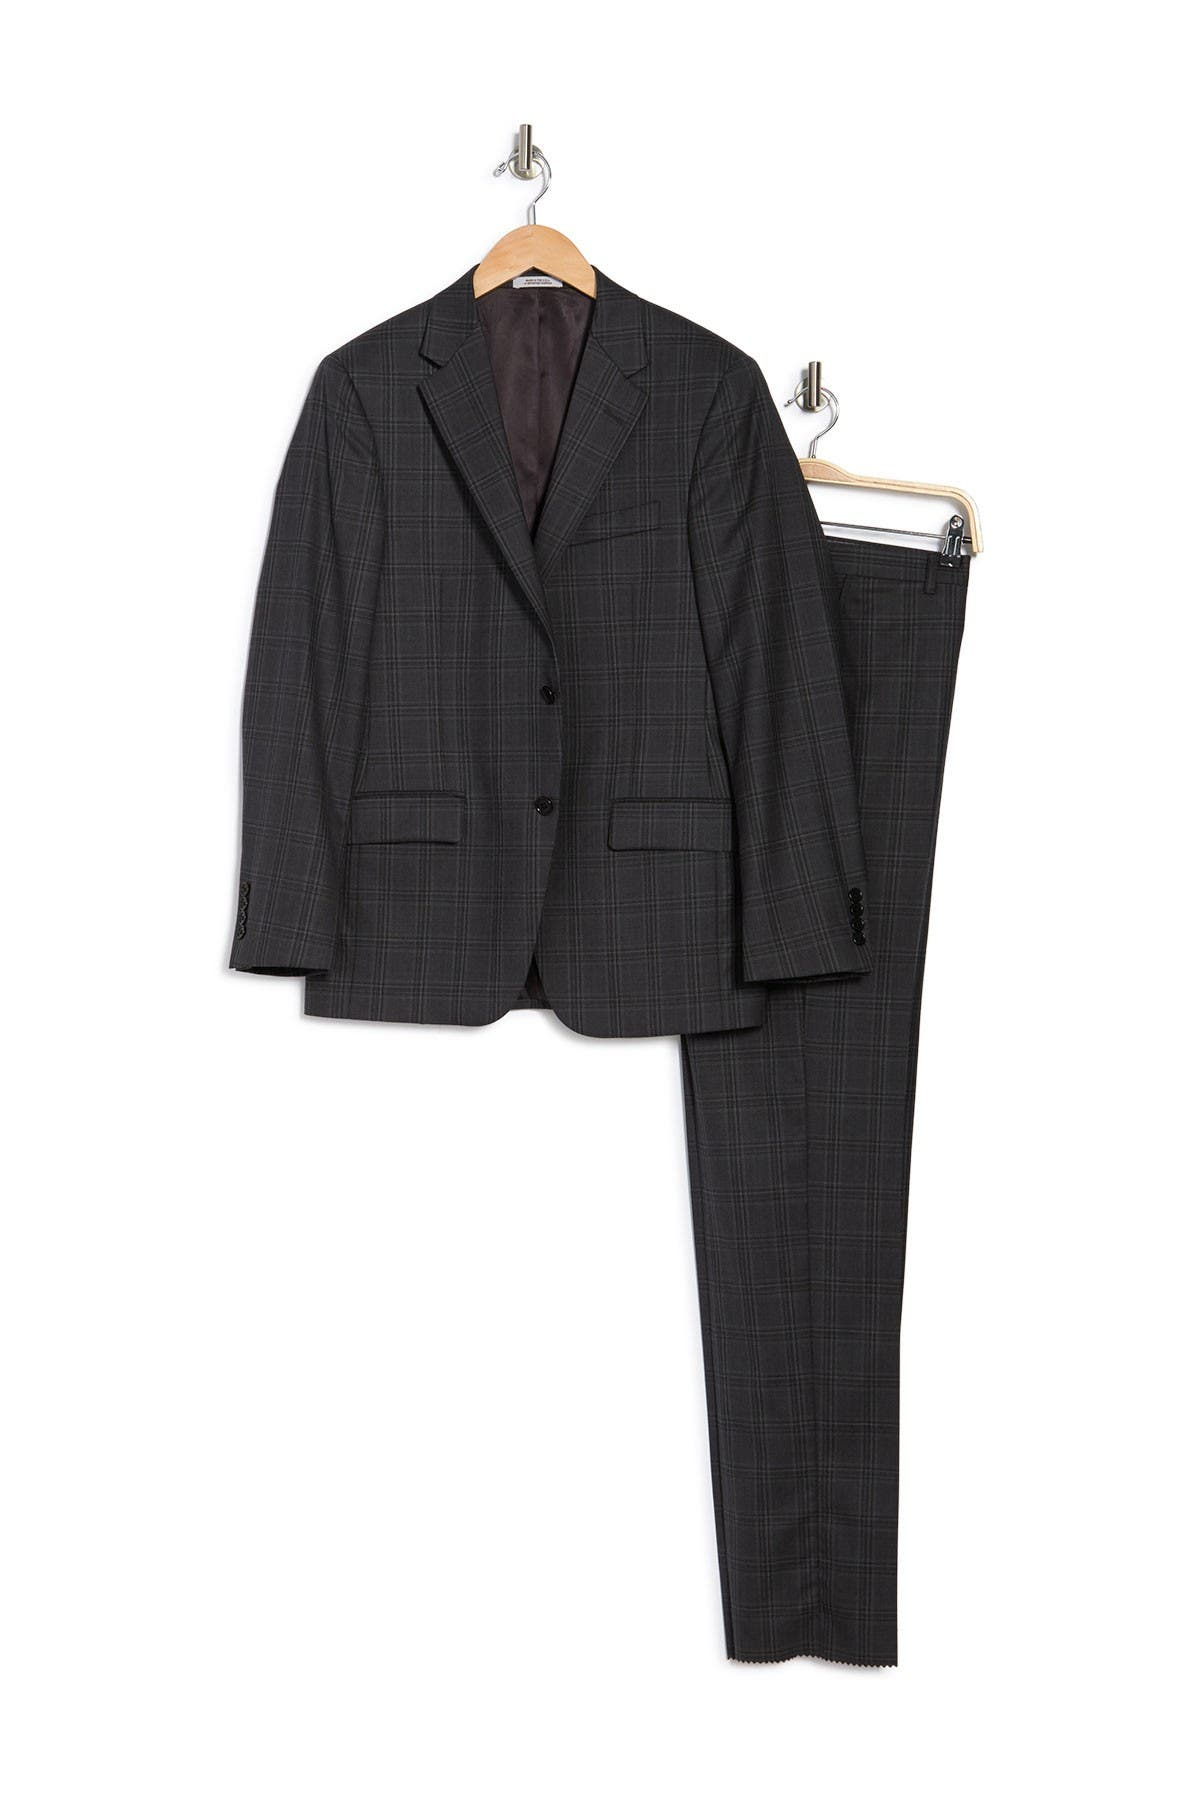 Image of Hickey Freeman Grey Plaid Two Button Notch Lapel Regular Fit Suit